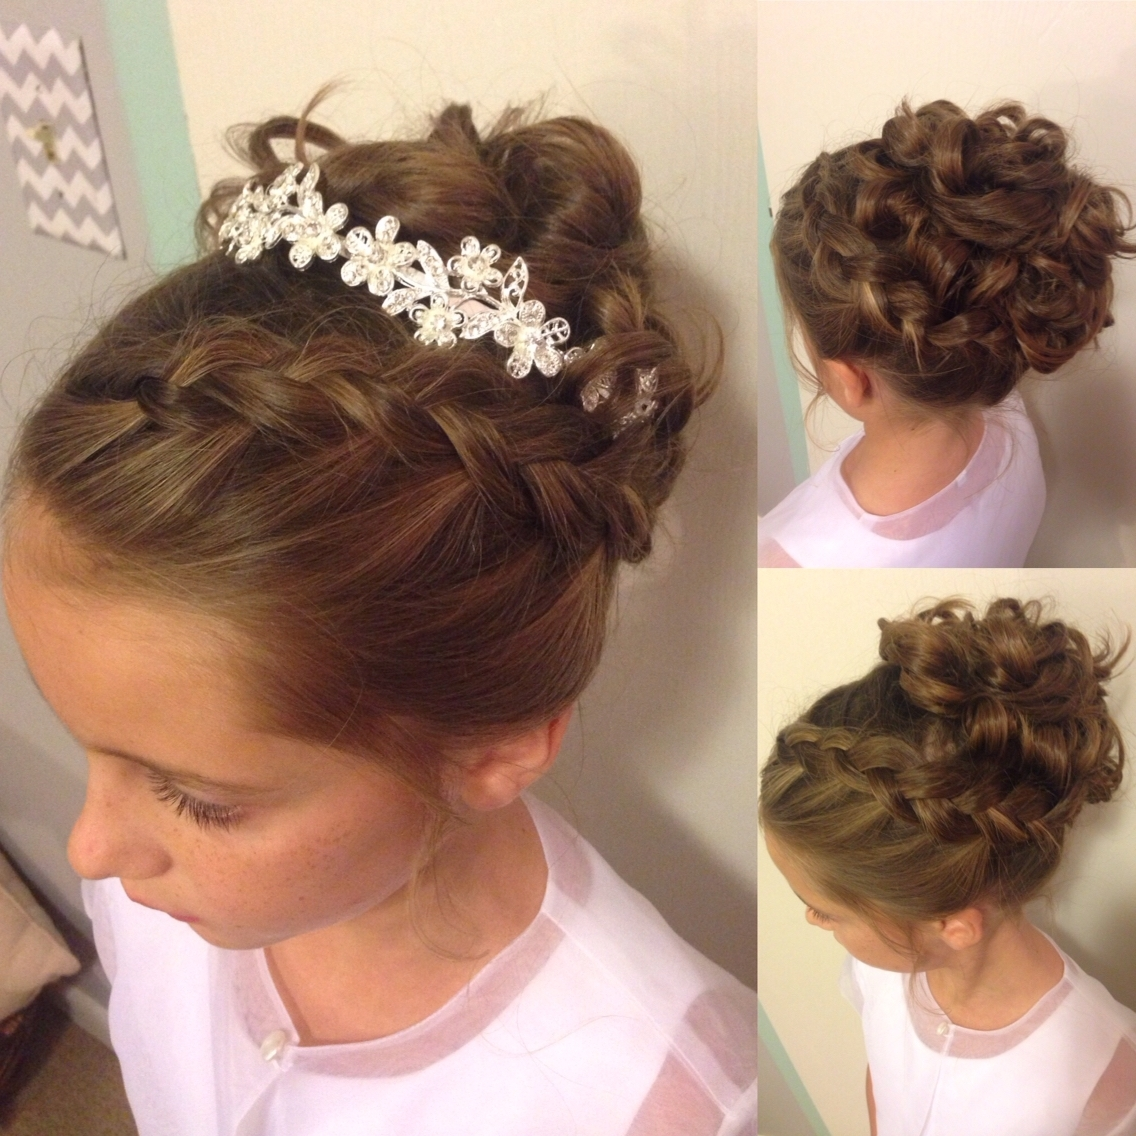 Pinmary Rose On My Work | Pinterest | Updo, Weddings And Girls For Updo Hairstyles With Flowers (View 8 of 15)